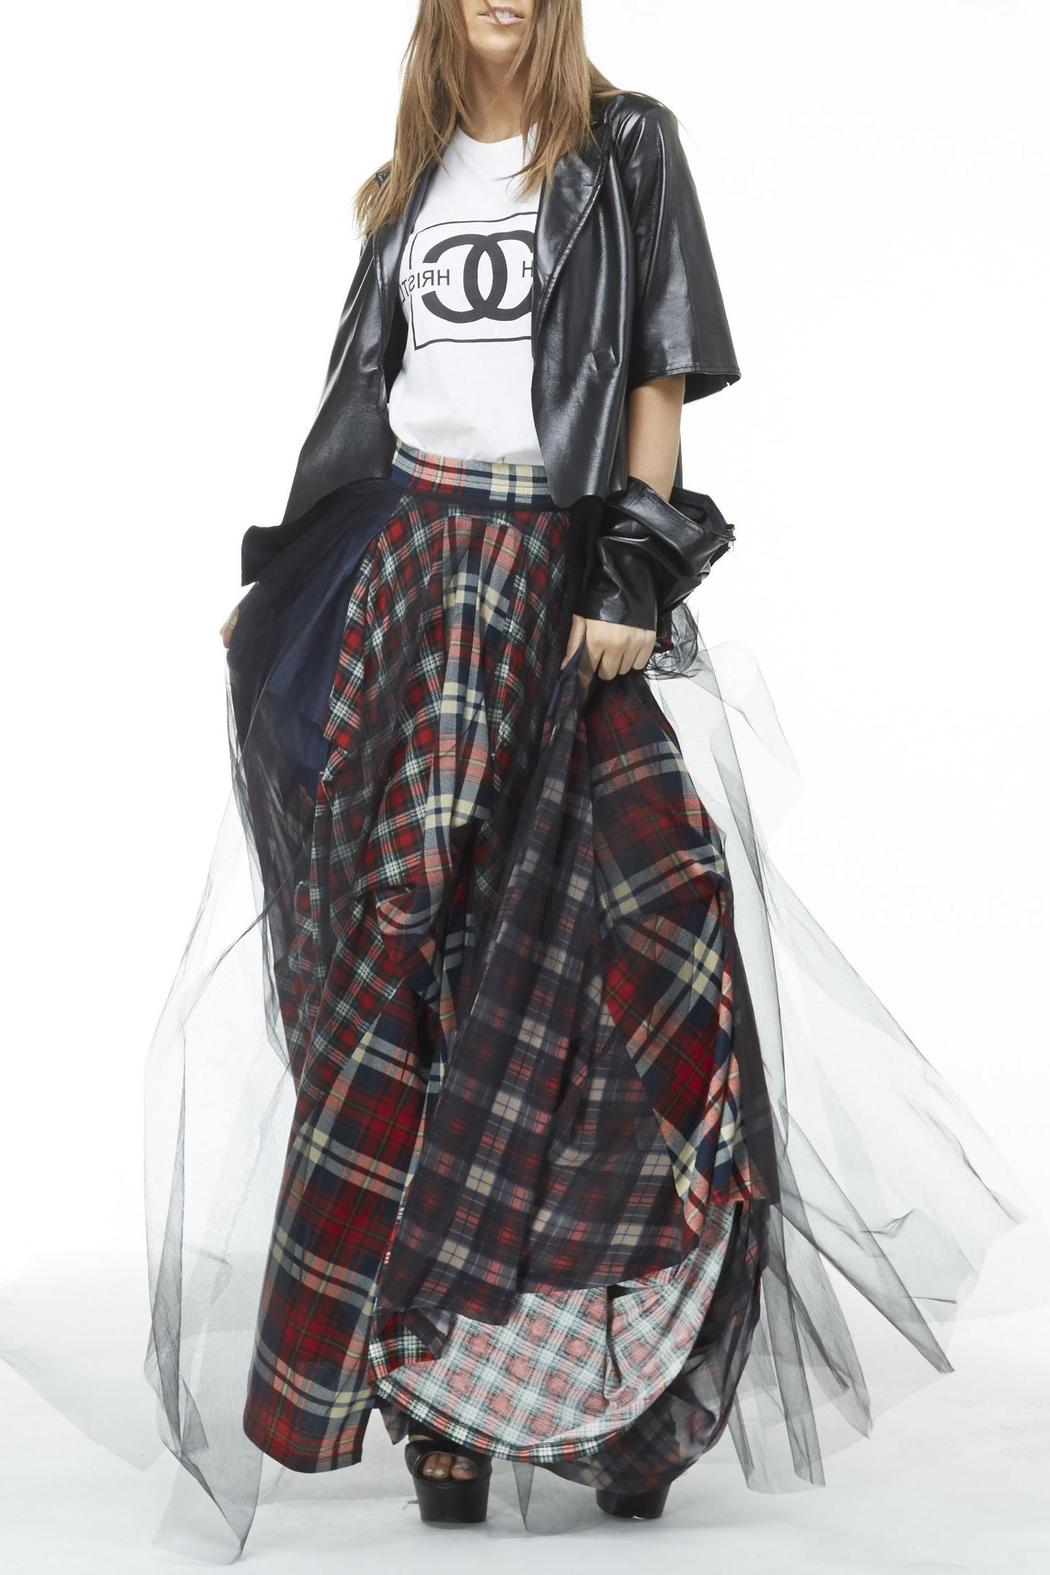 Mhgs Plaid Maxi Skirt From Tampa By Mad Hatter General